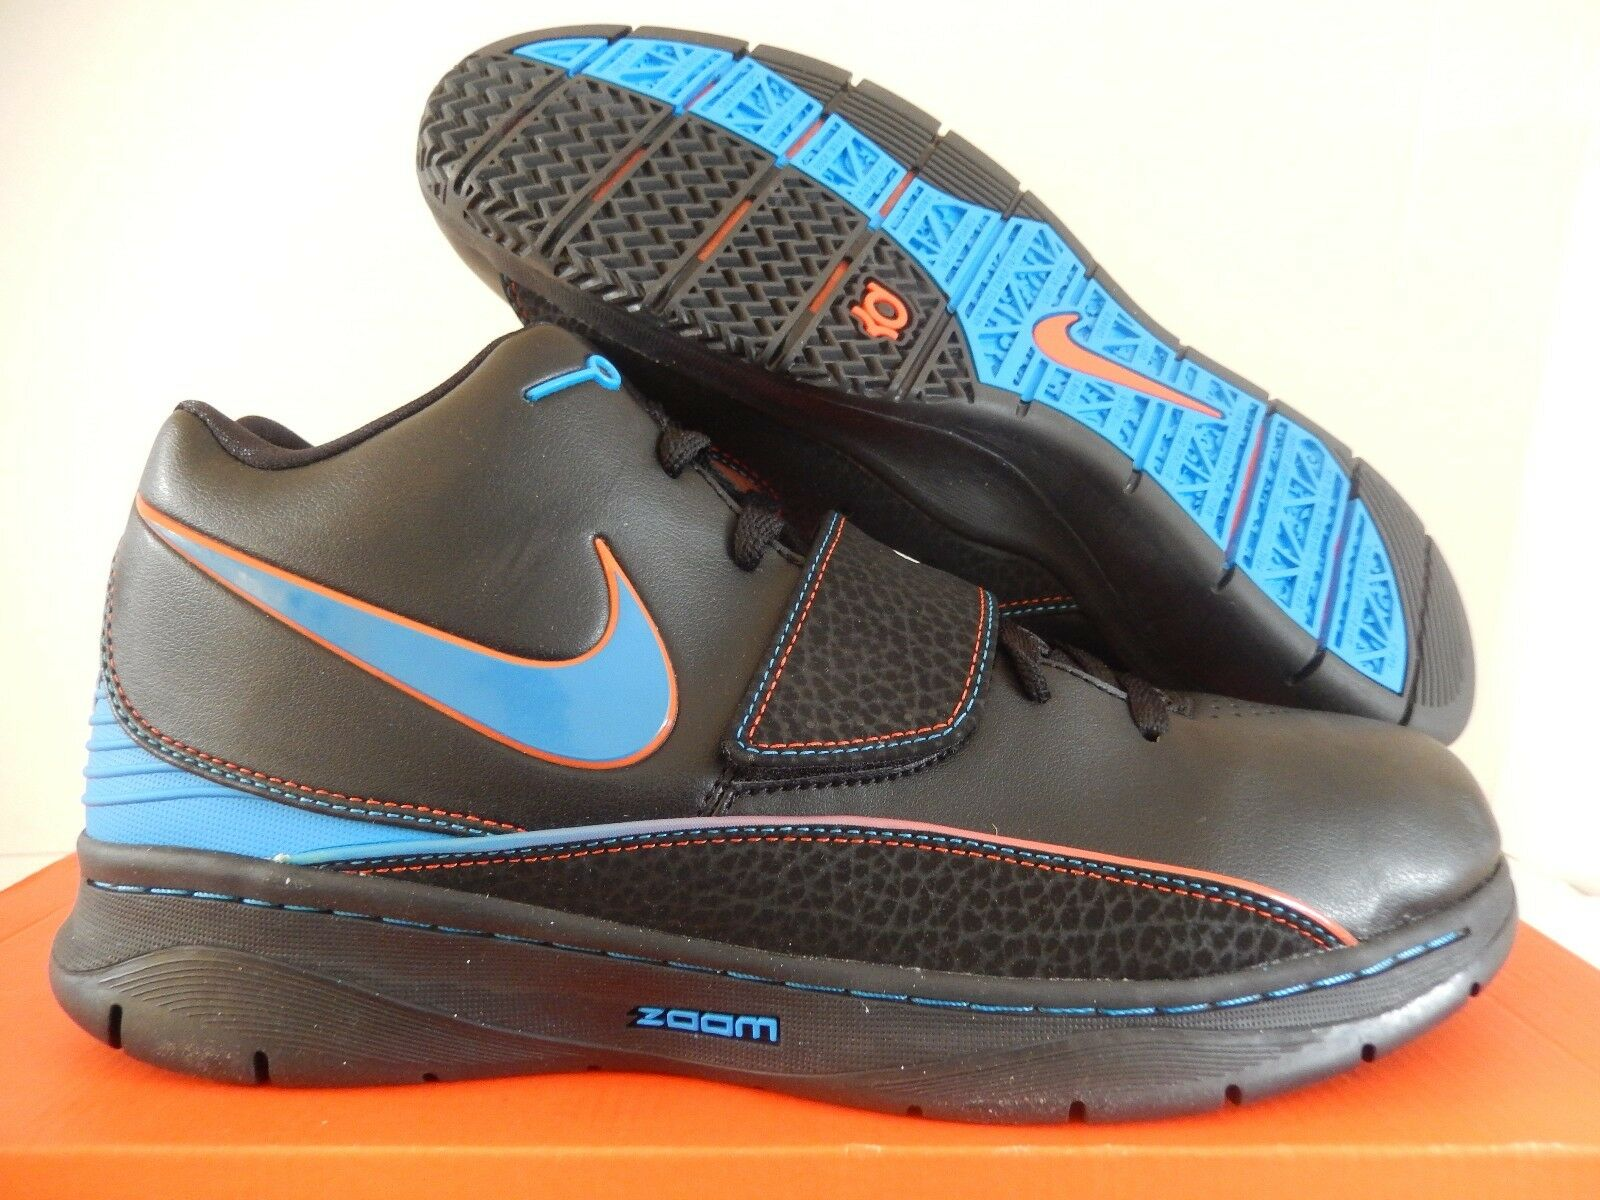 Nike kd ii 2 kevin durant nero-photo blue-team orange sz 10 raro![386423-041]